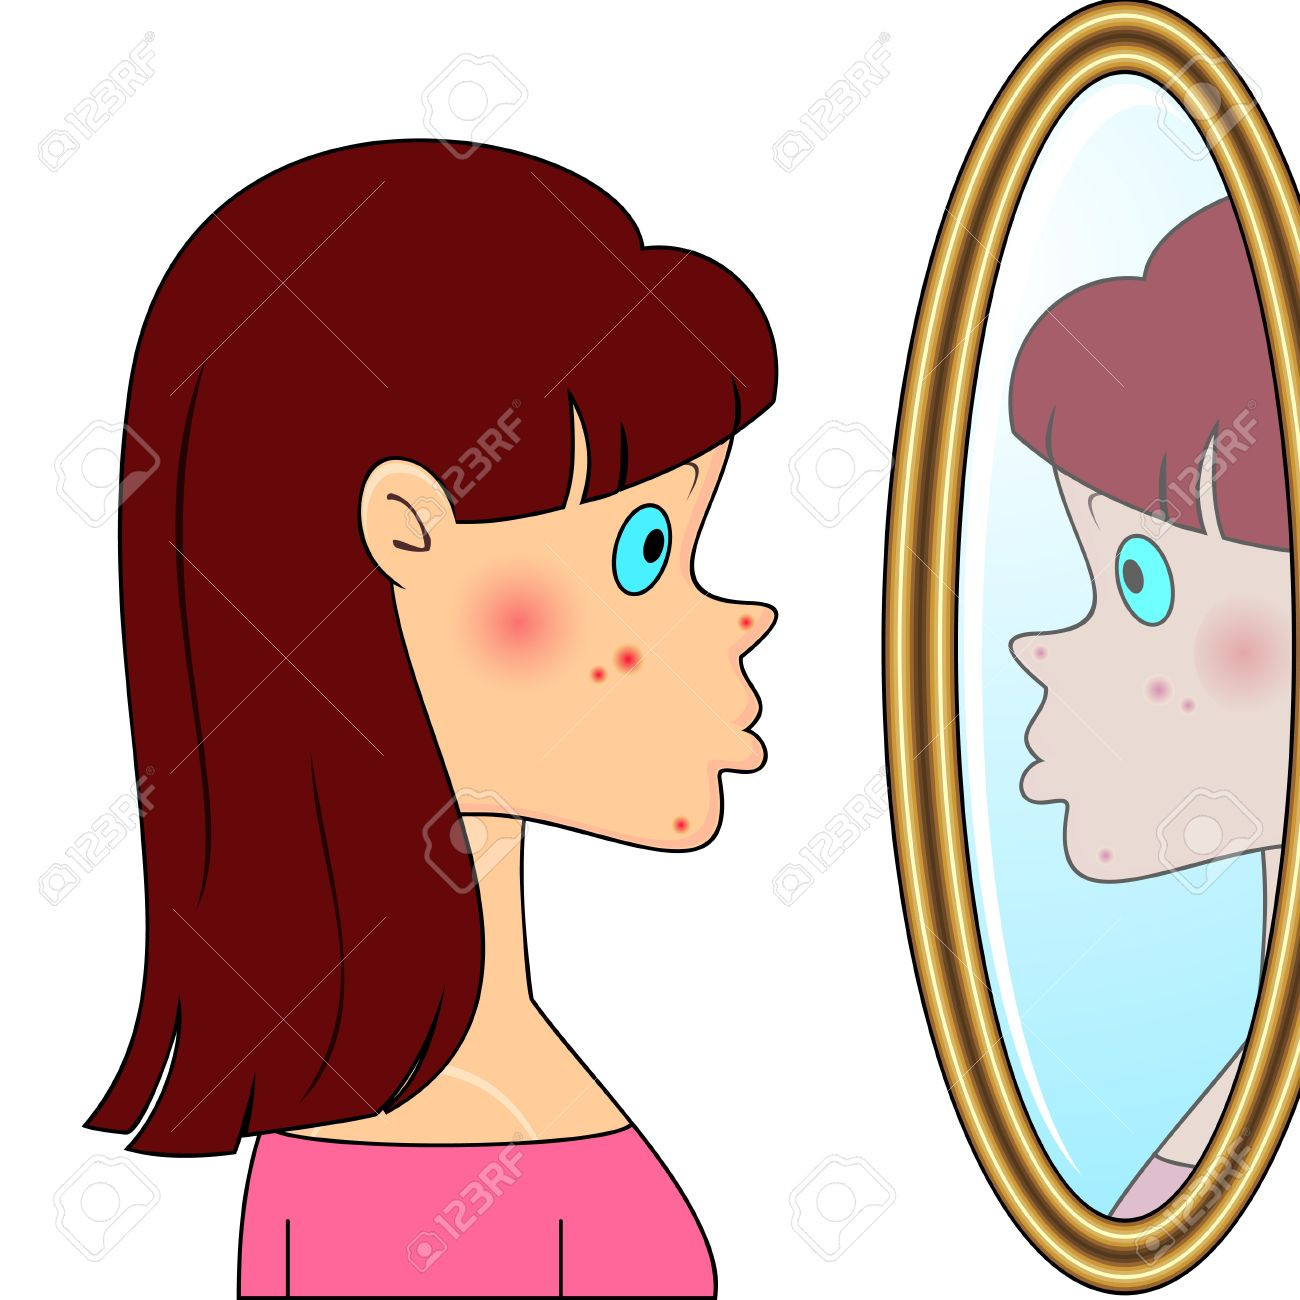 Sad teenager girl looking at mirror and seeing acne Stock Vector - 11651388